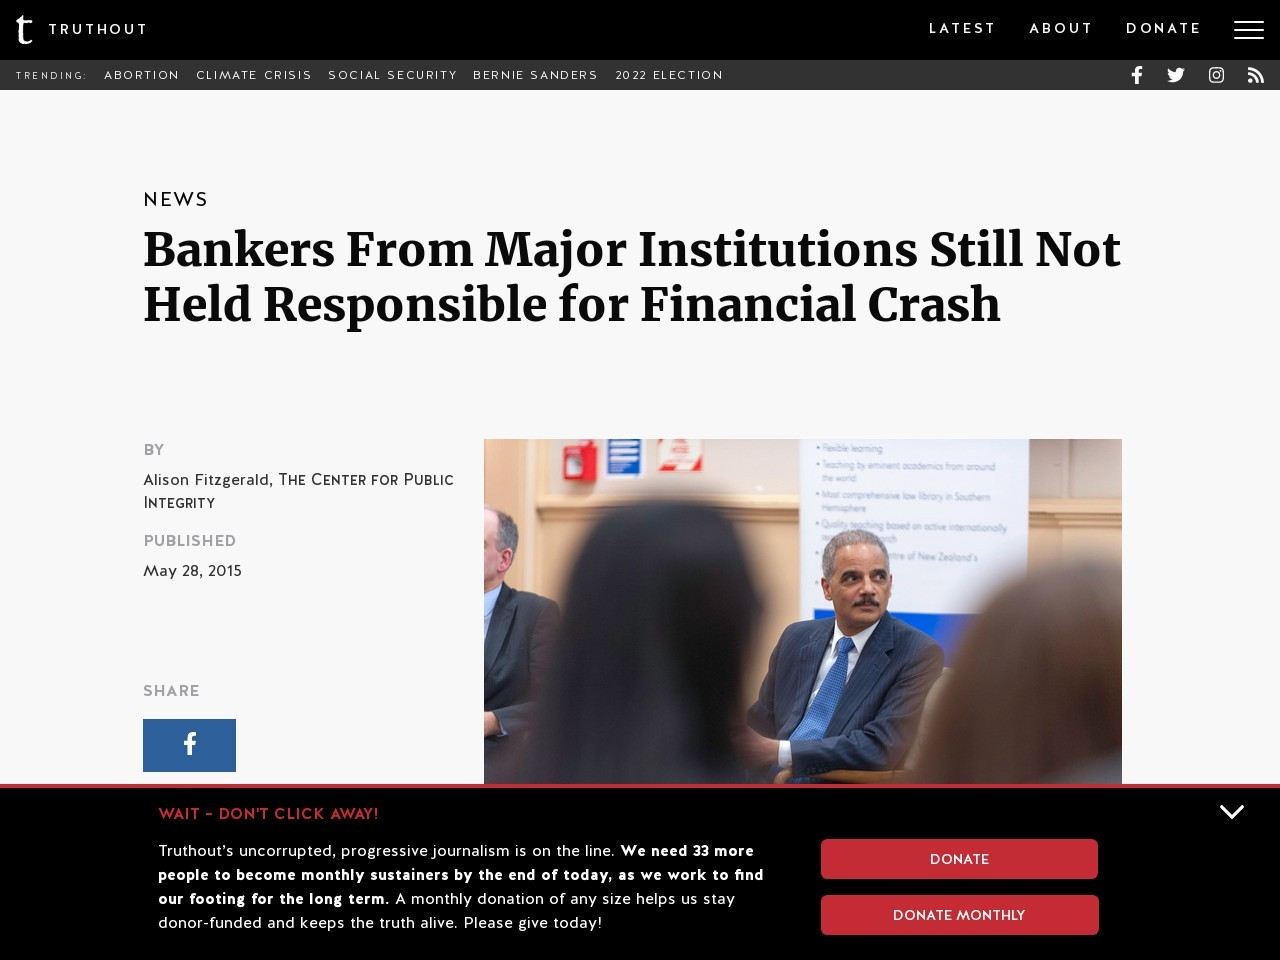 Bankers From Major Institutions Still Not Held Responsible for Financial Crash